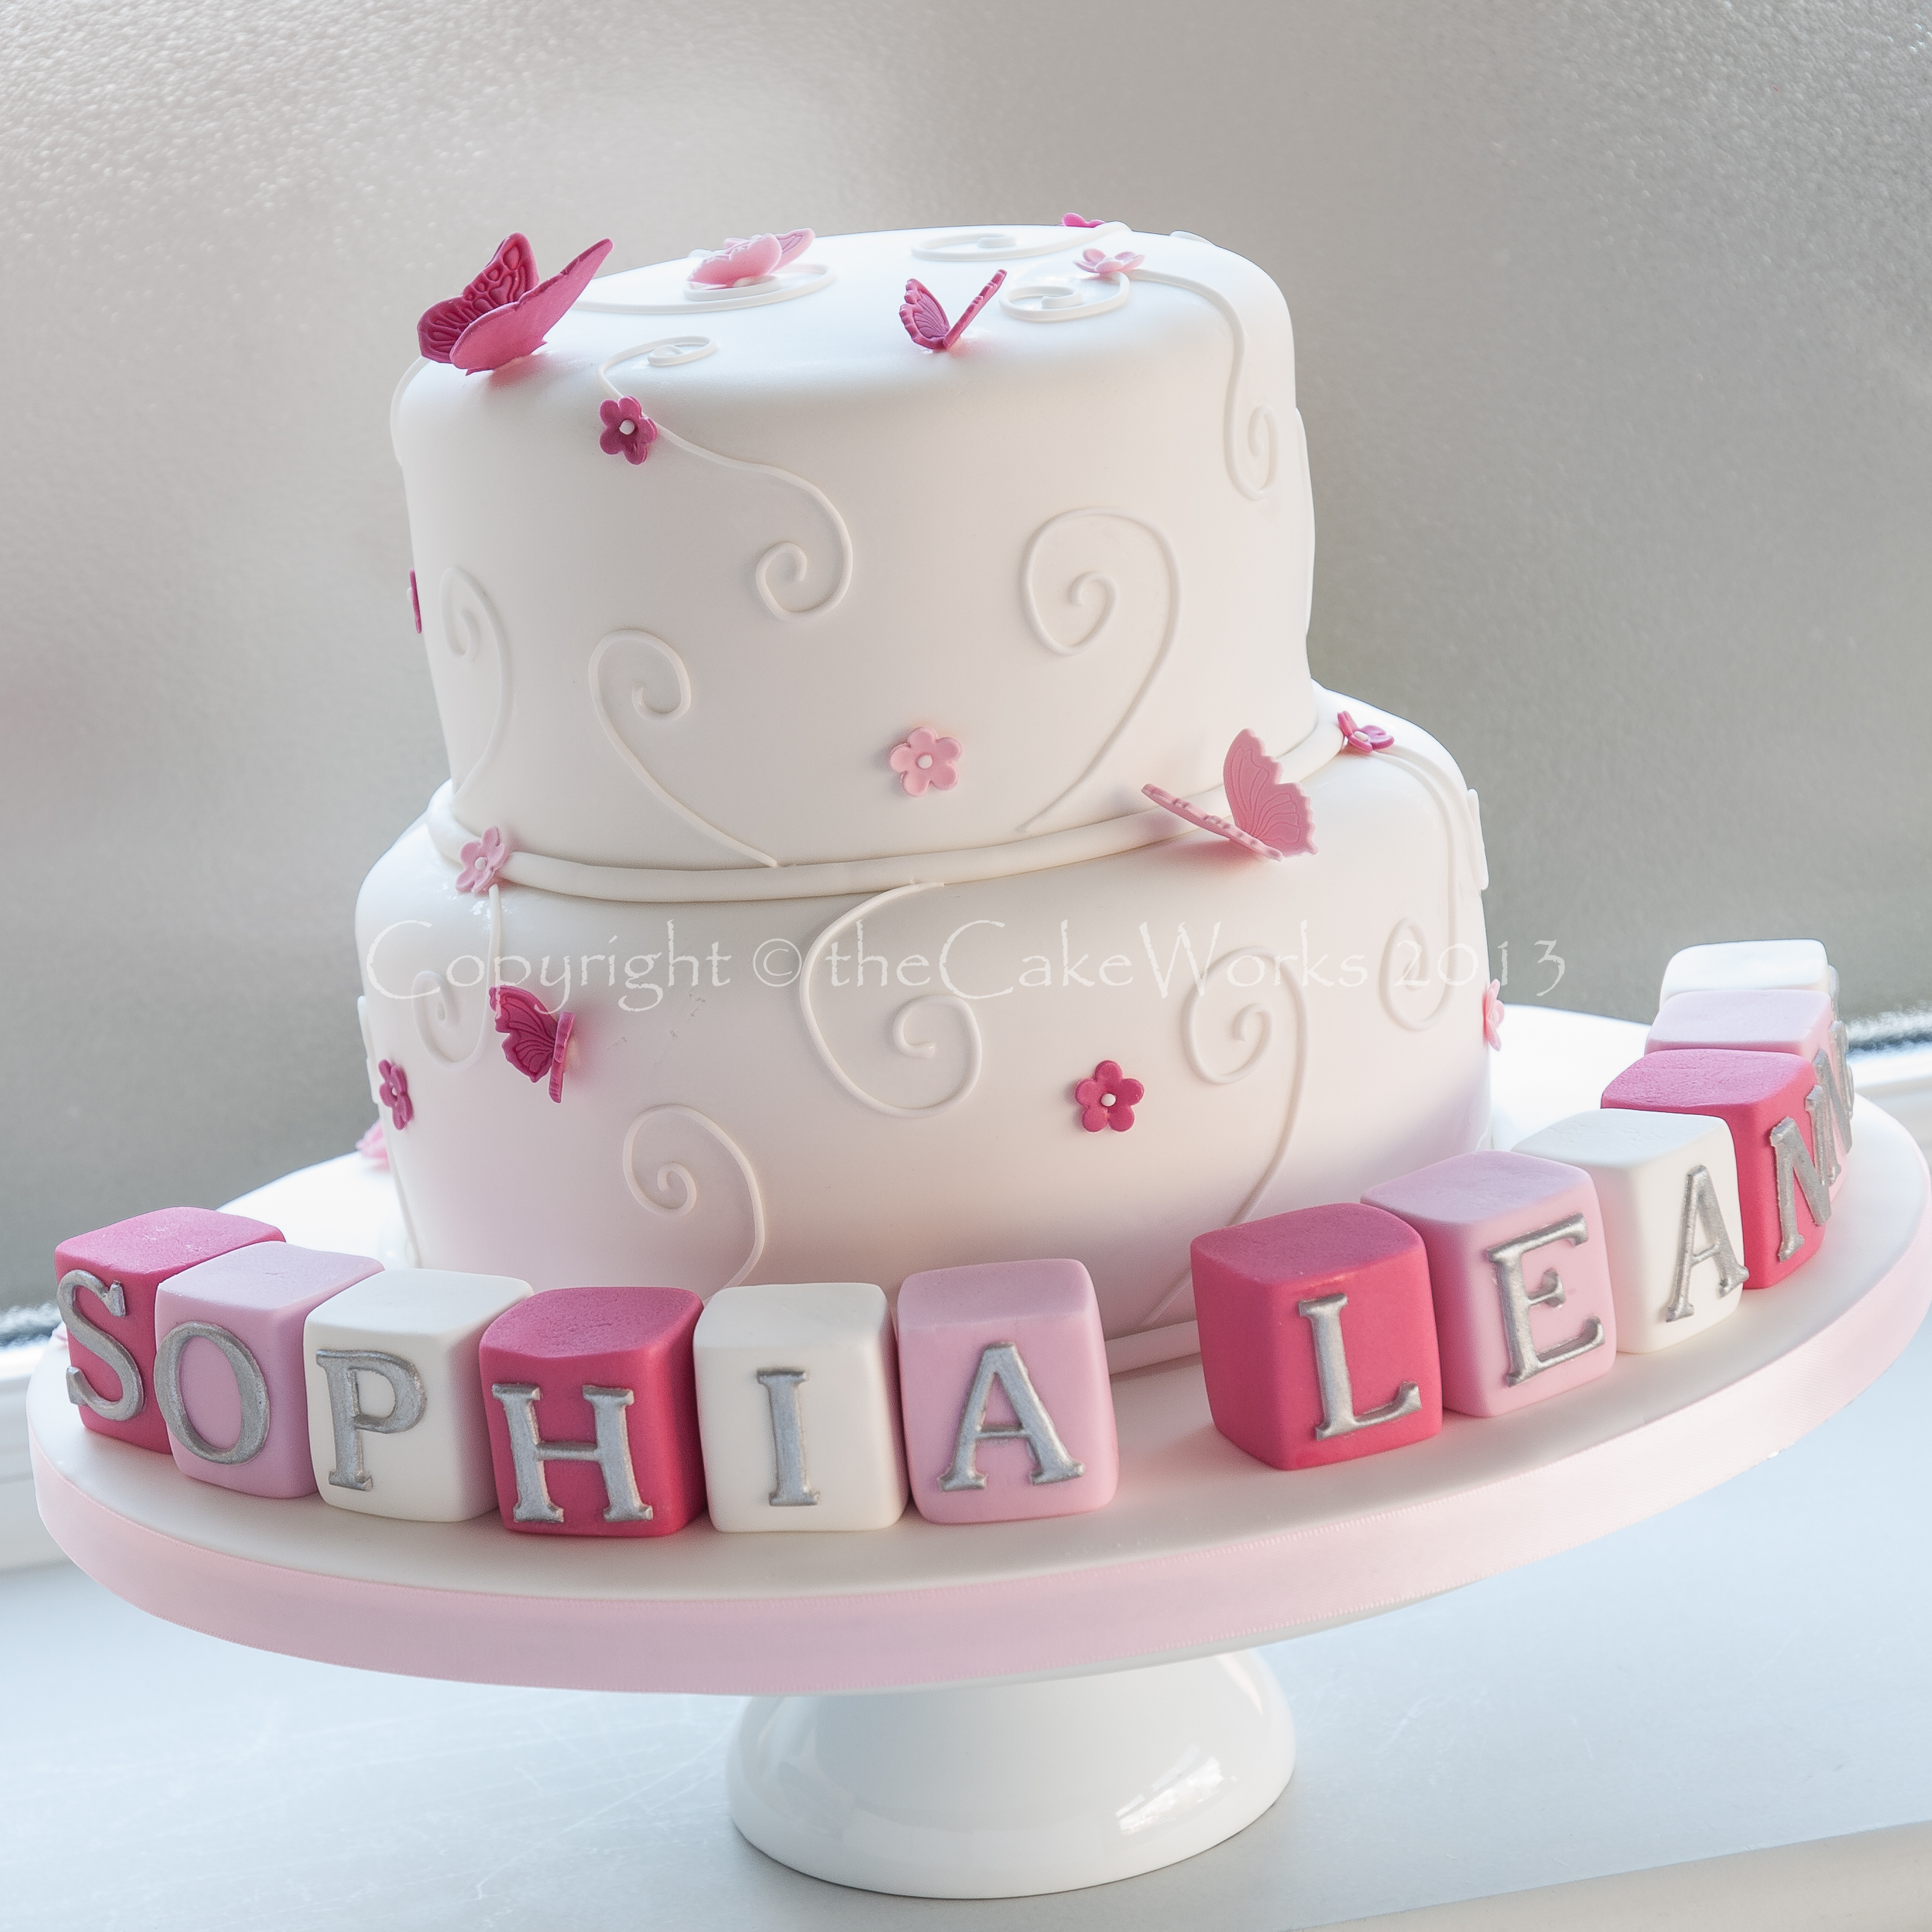 Latest Cake Design For Girl : Wedding Cakes, Birthday Cakes & Christening cakes ...